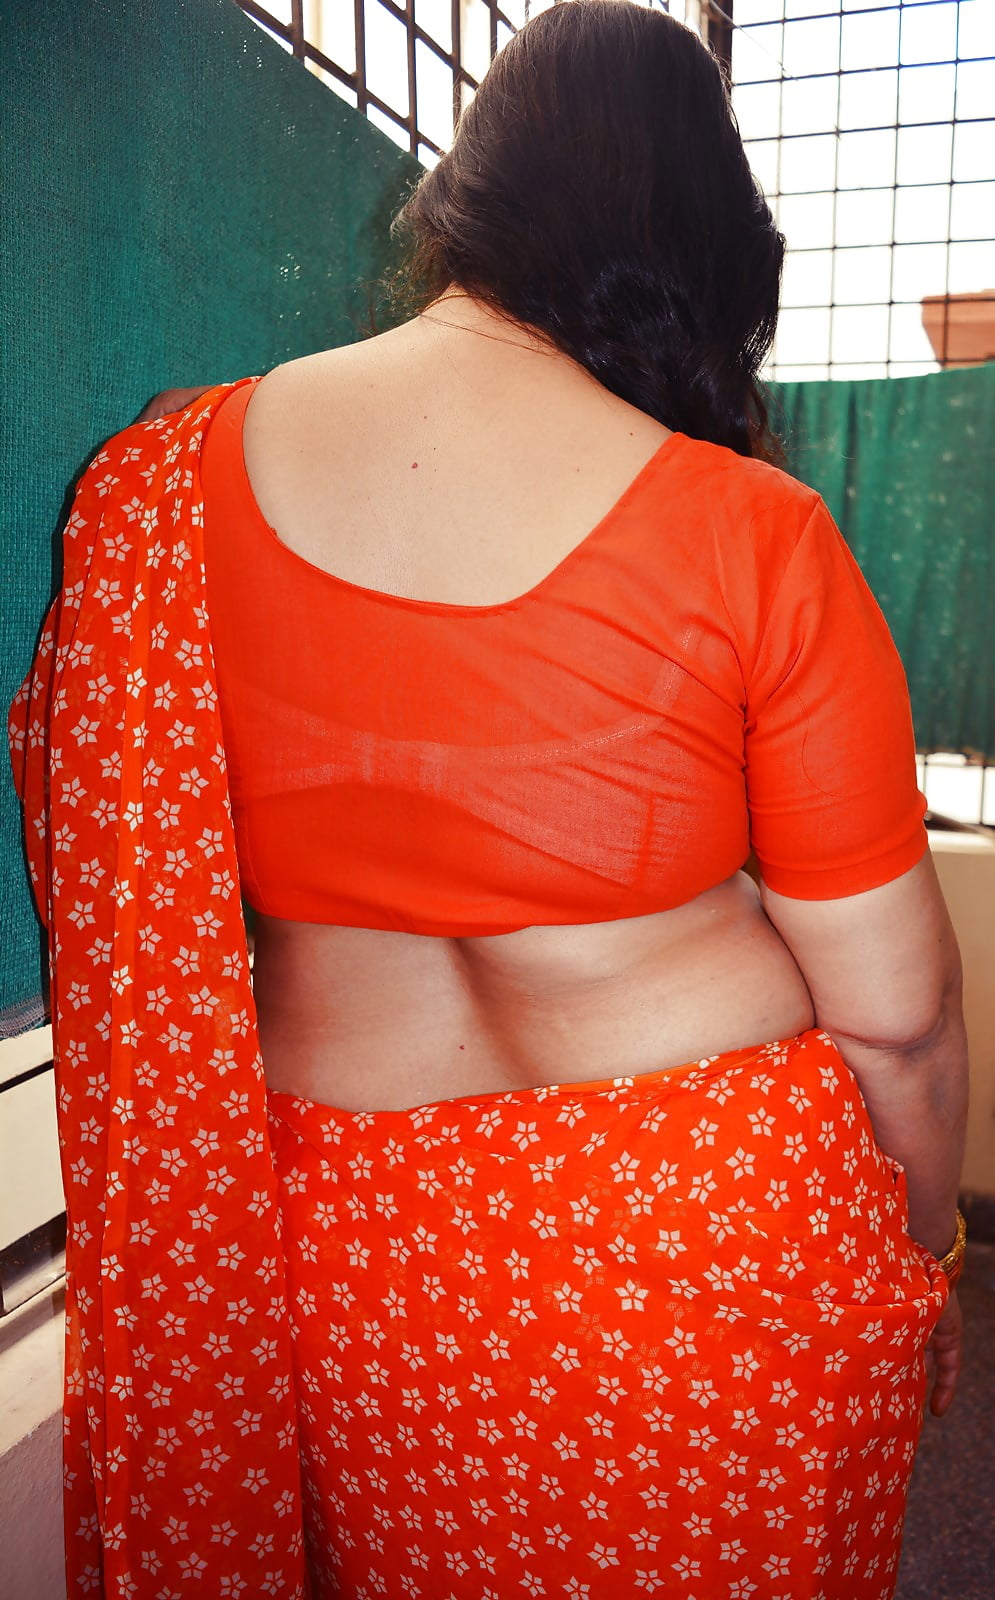 butt aunty saree